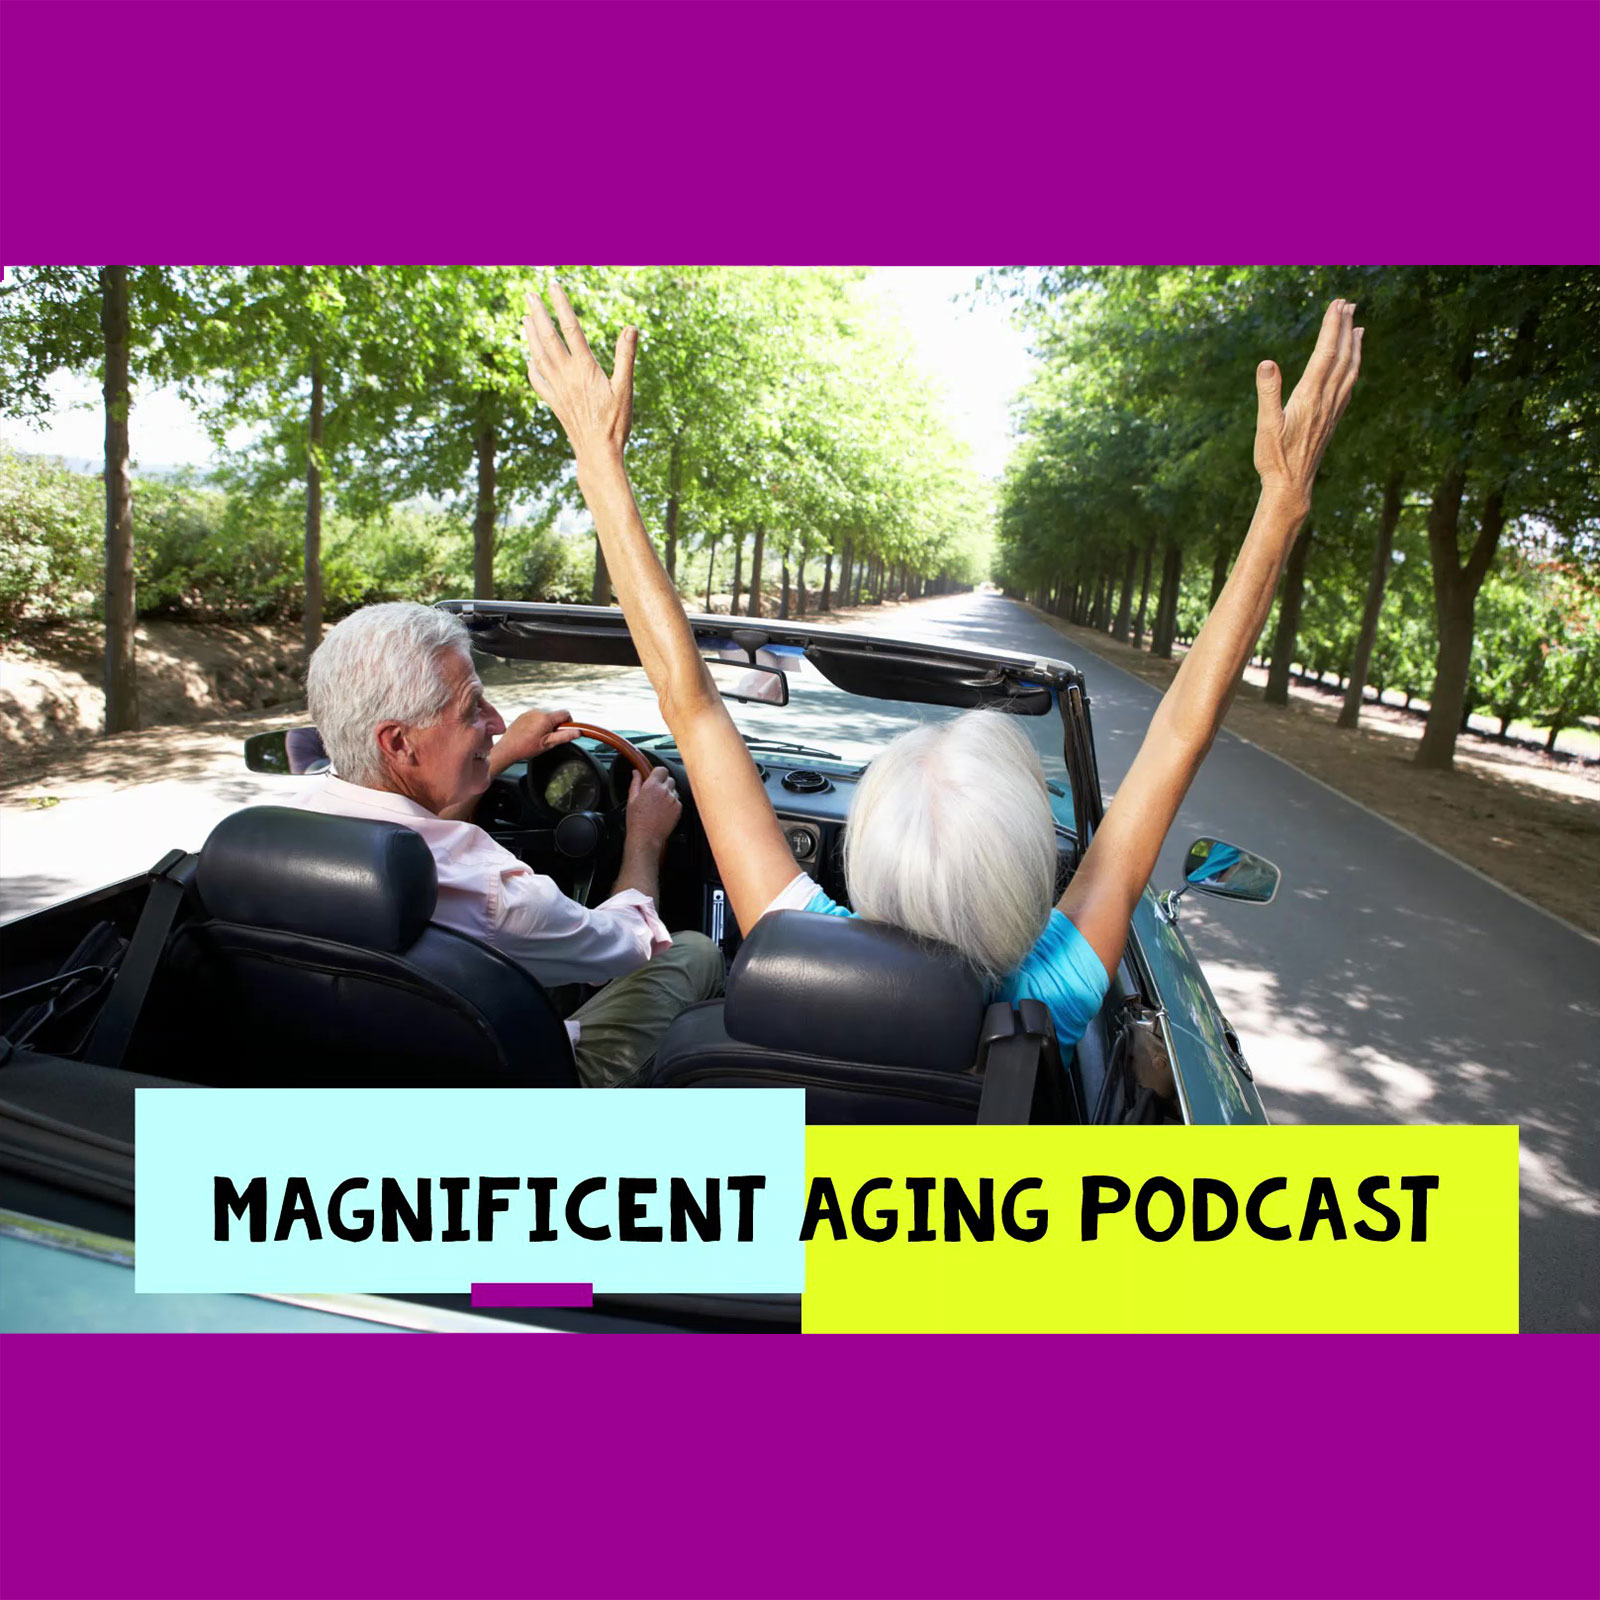 Magnificent Aging Podcast show art